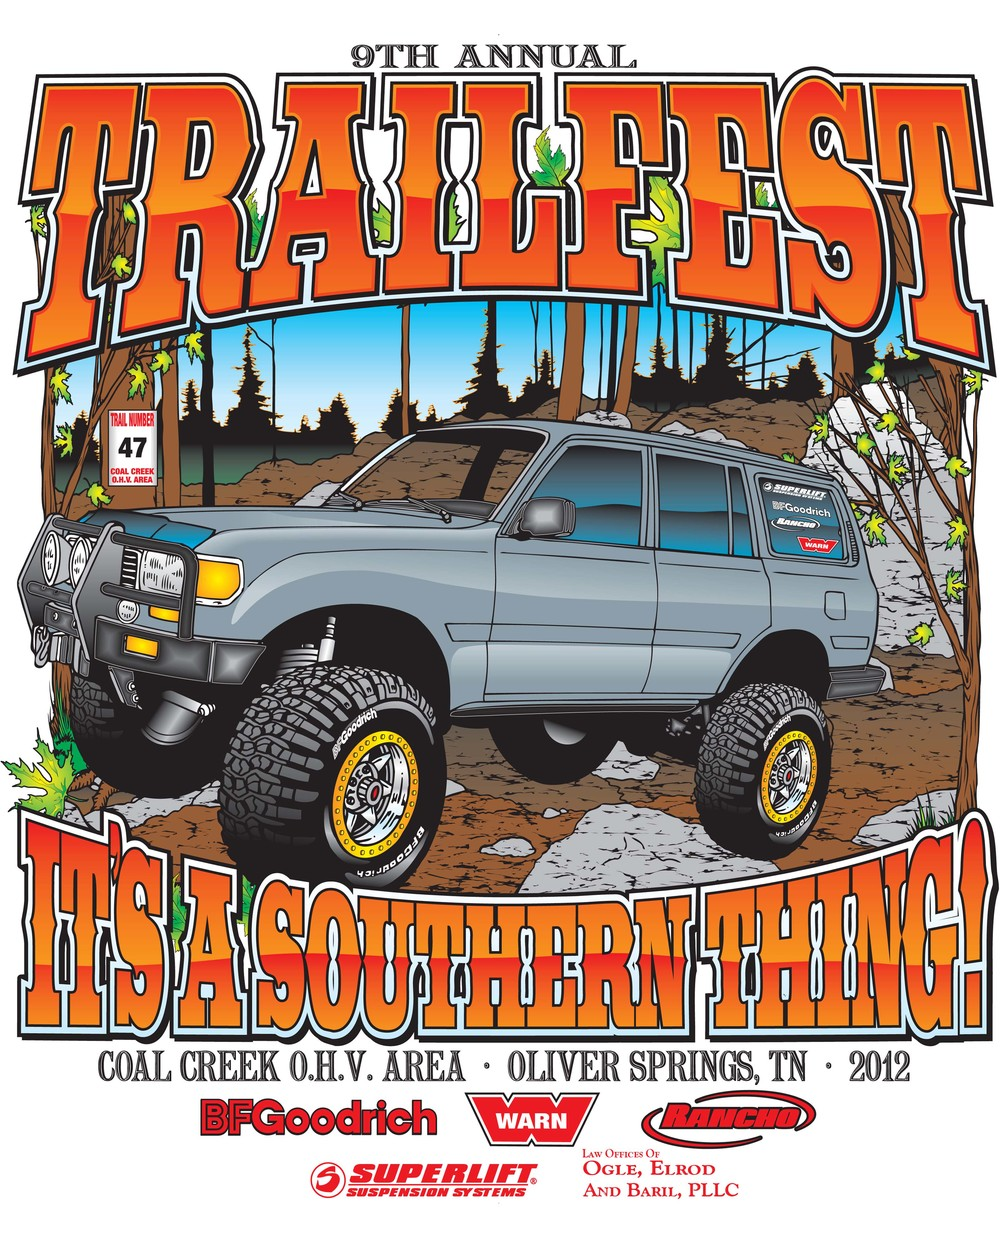 trailfest12 WHITE.jpg